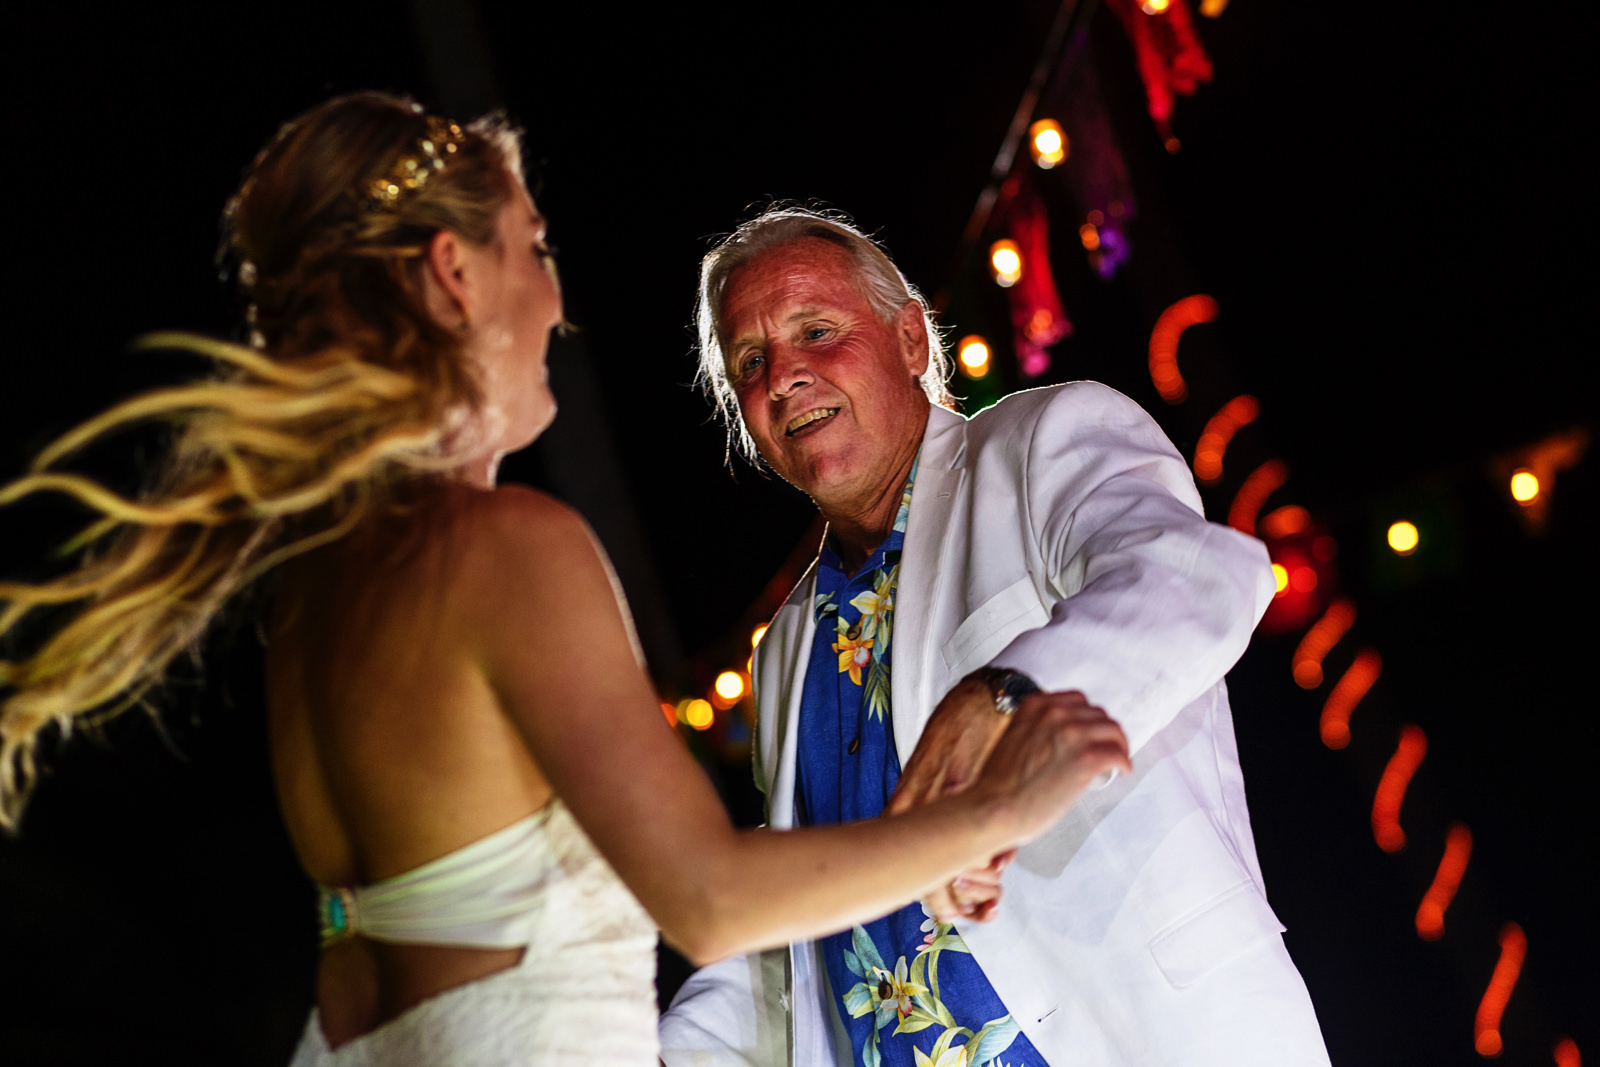 Father spins the bride during the dad and daughter dance